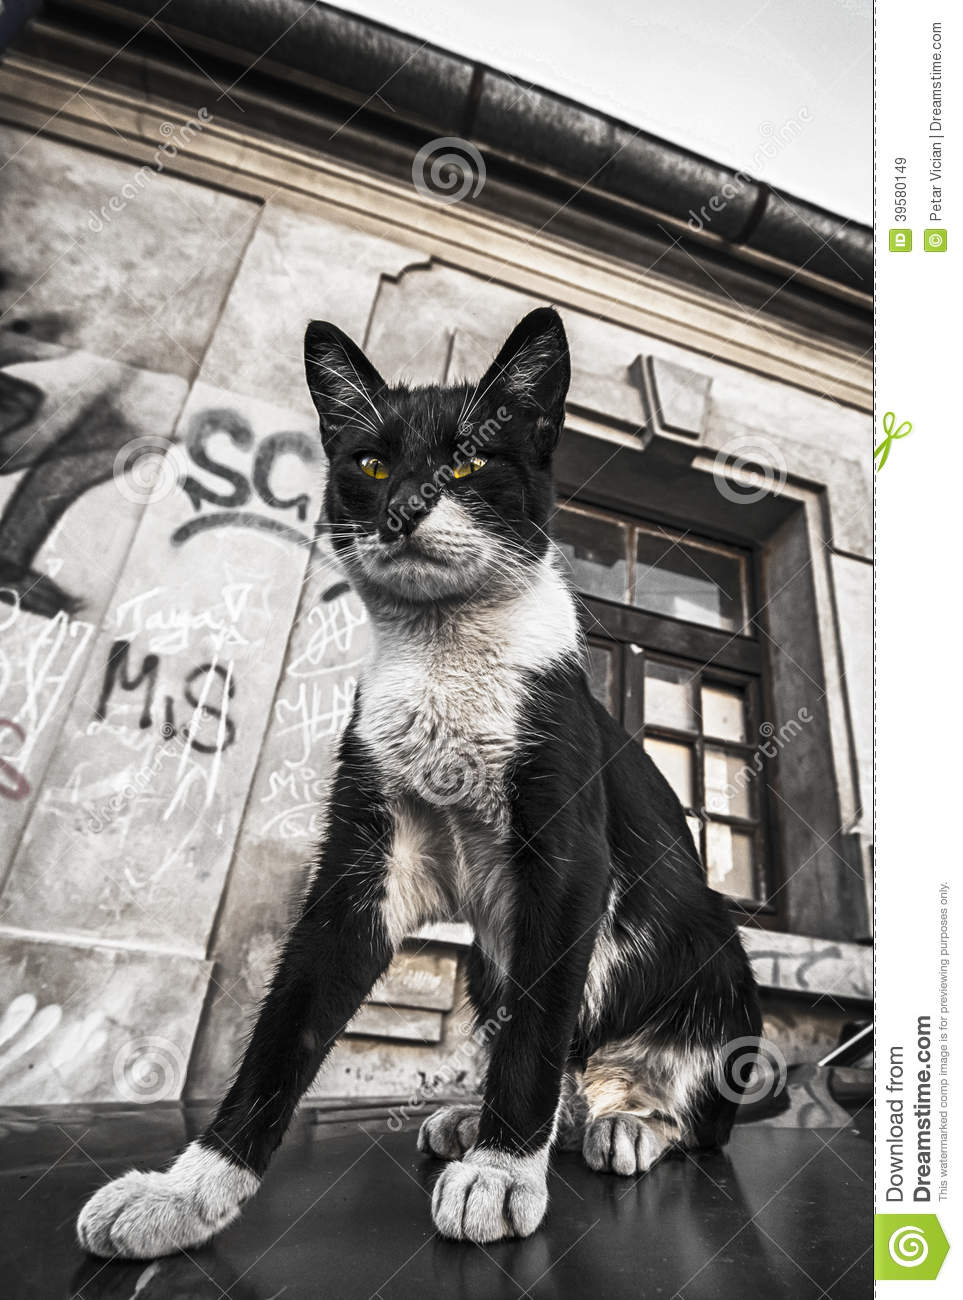 Cat On The Car And Street Graffiti On Old Wall Grunge